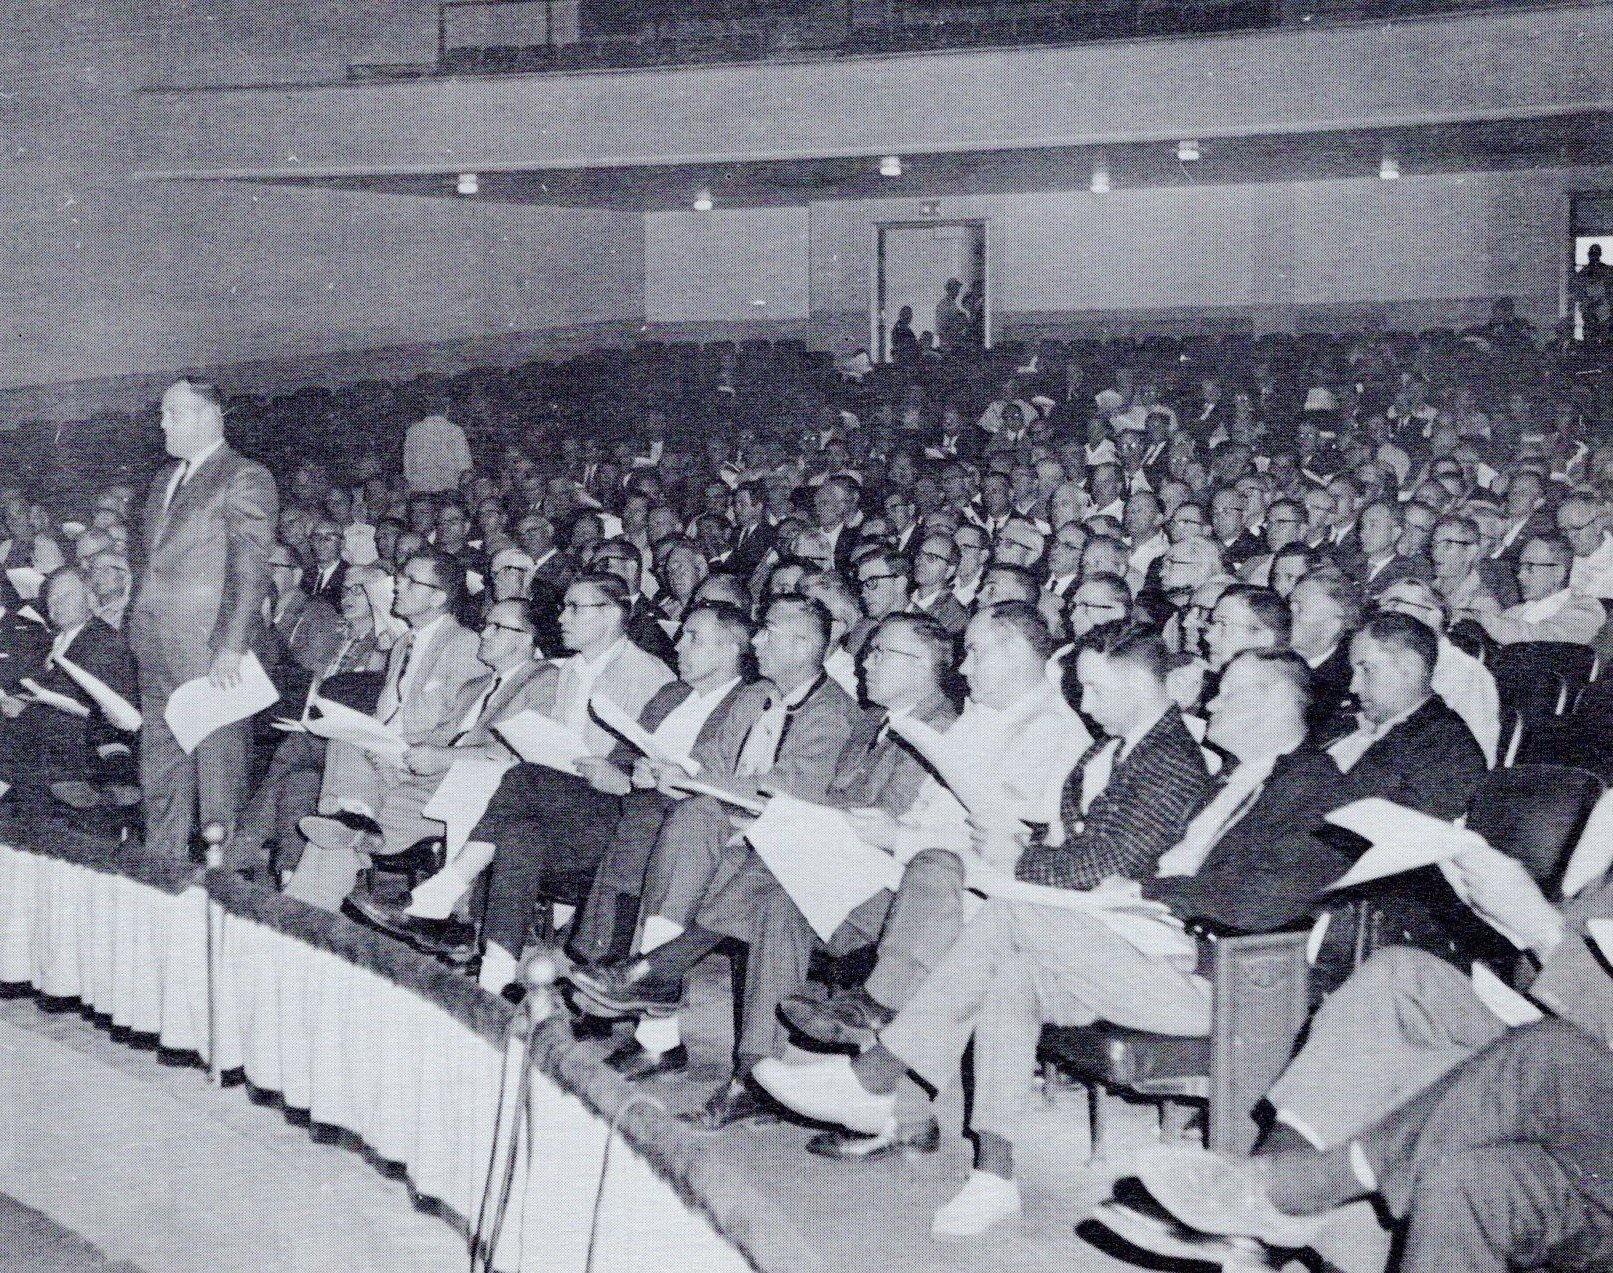 I.A.M. Lodge 598 members at a strike vote meeting in 1967, only two years after the plant unionized. In the first two years of unionization, hundreds of filed grievances went unresolved, and the workers chose to strike against unresponsive management.